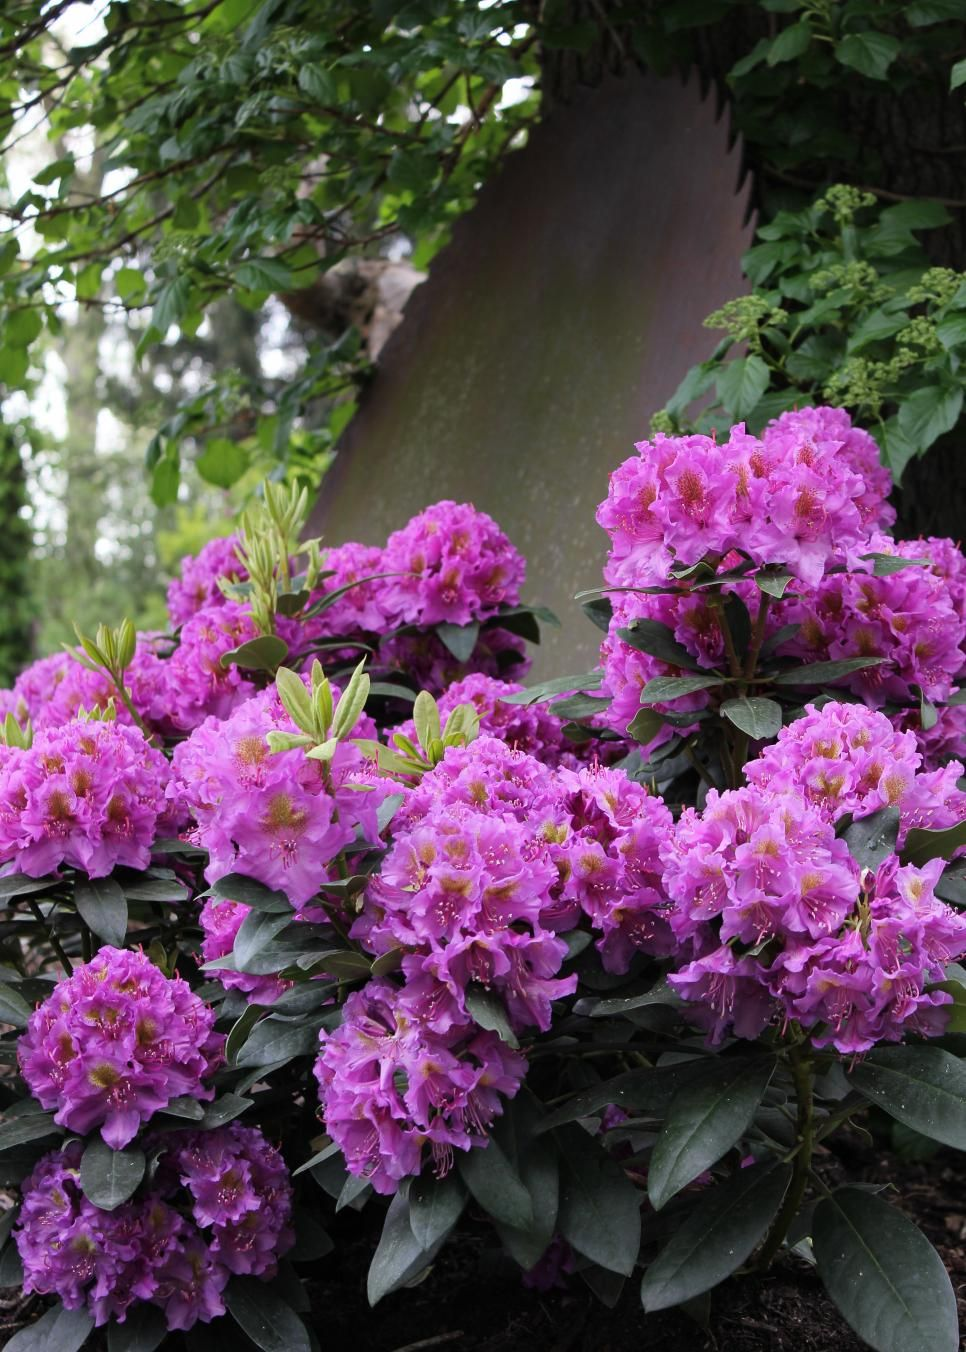 Flowering shrubs for shade gardens pinterest shade loving shrubs discover flowering shrubs for shade and get growing tips to help them thrive from the experts at hgtv gardens mightylinksfo